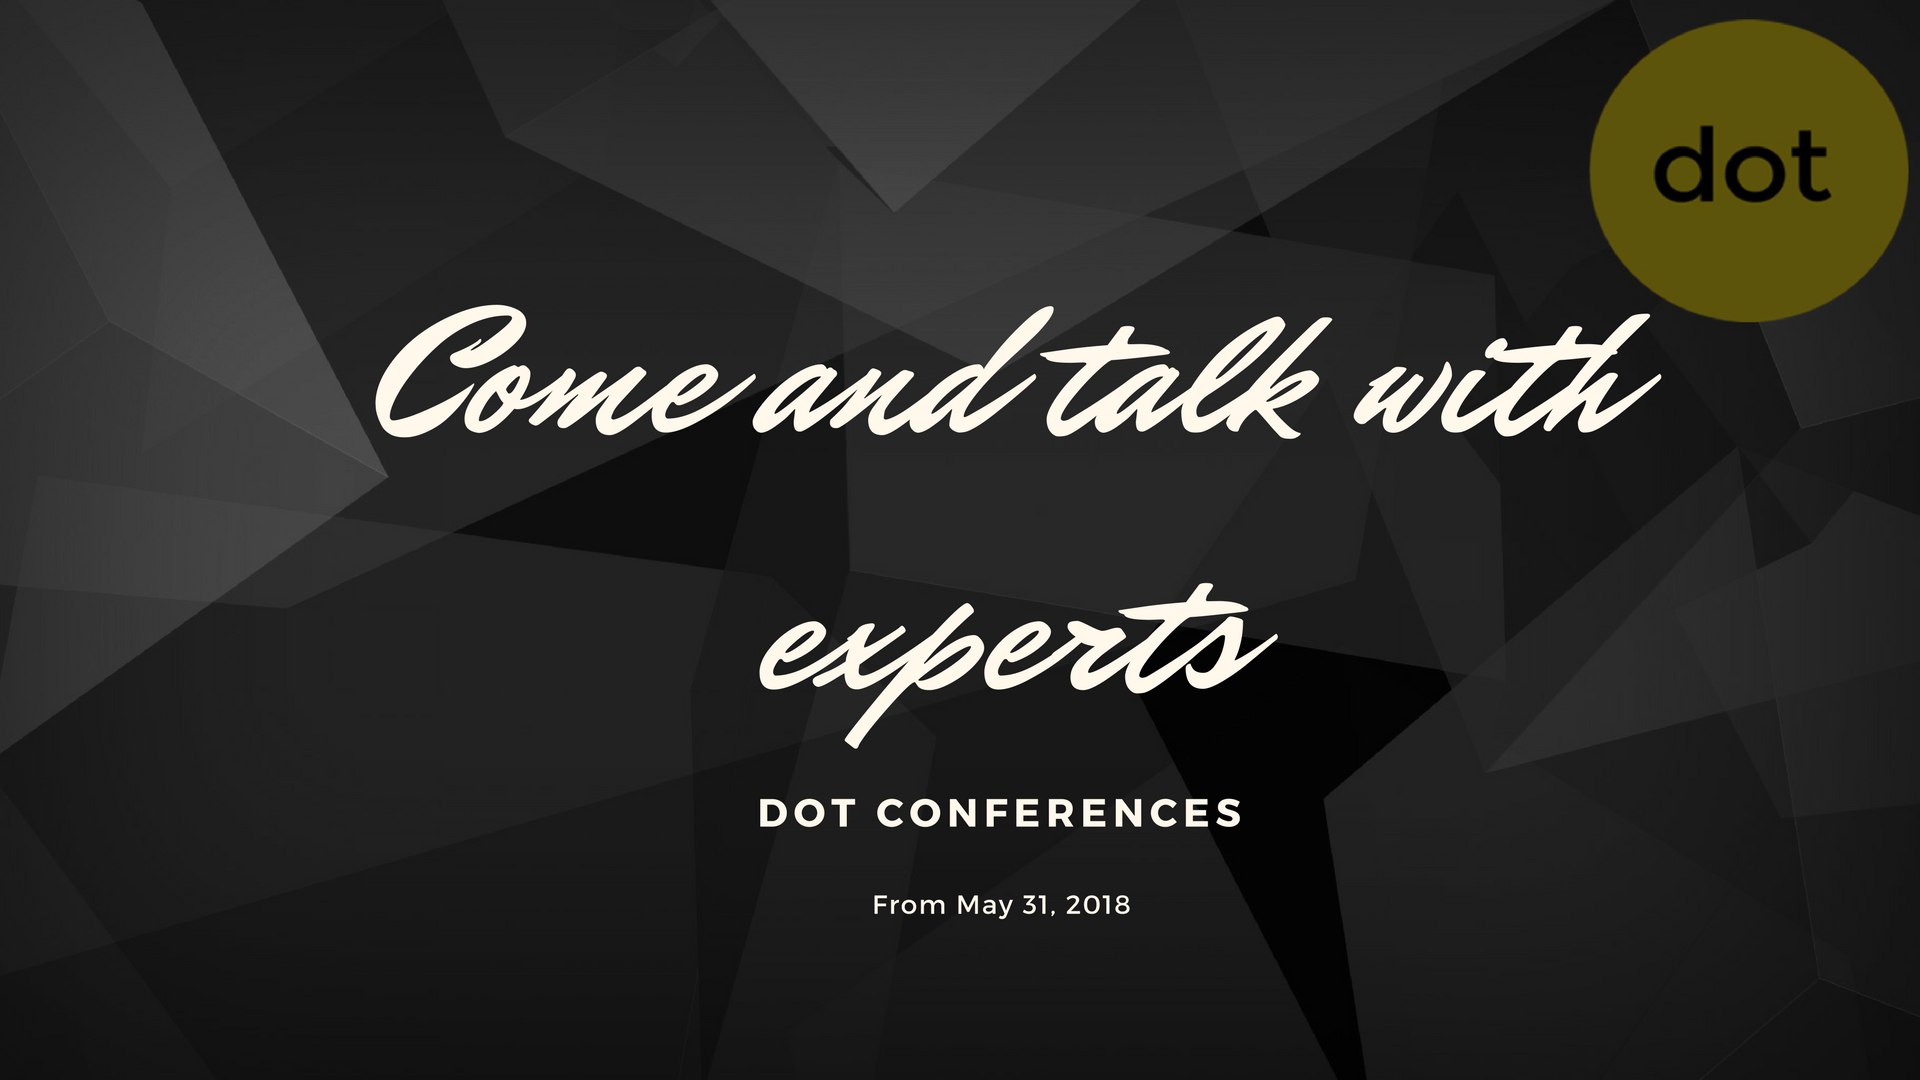 The conferences dot are coming …